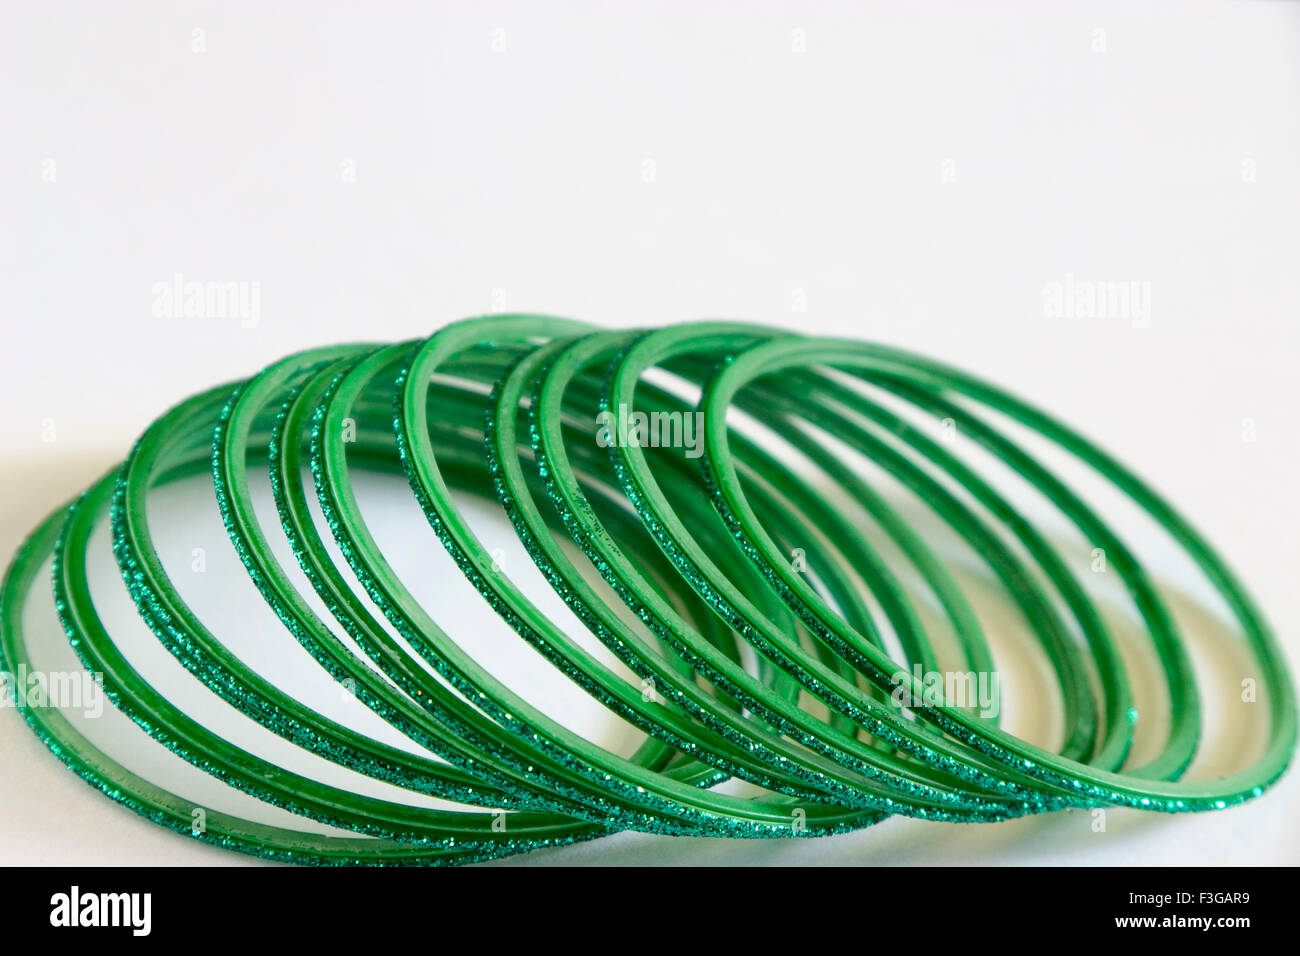 Eleven round green glass bangles on white background - Stock Image